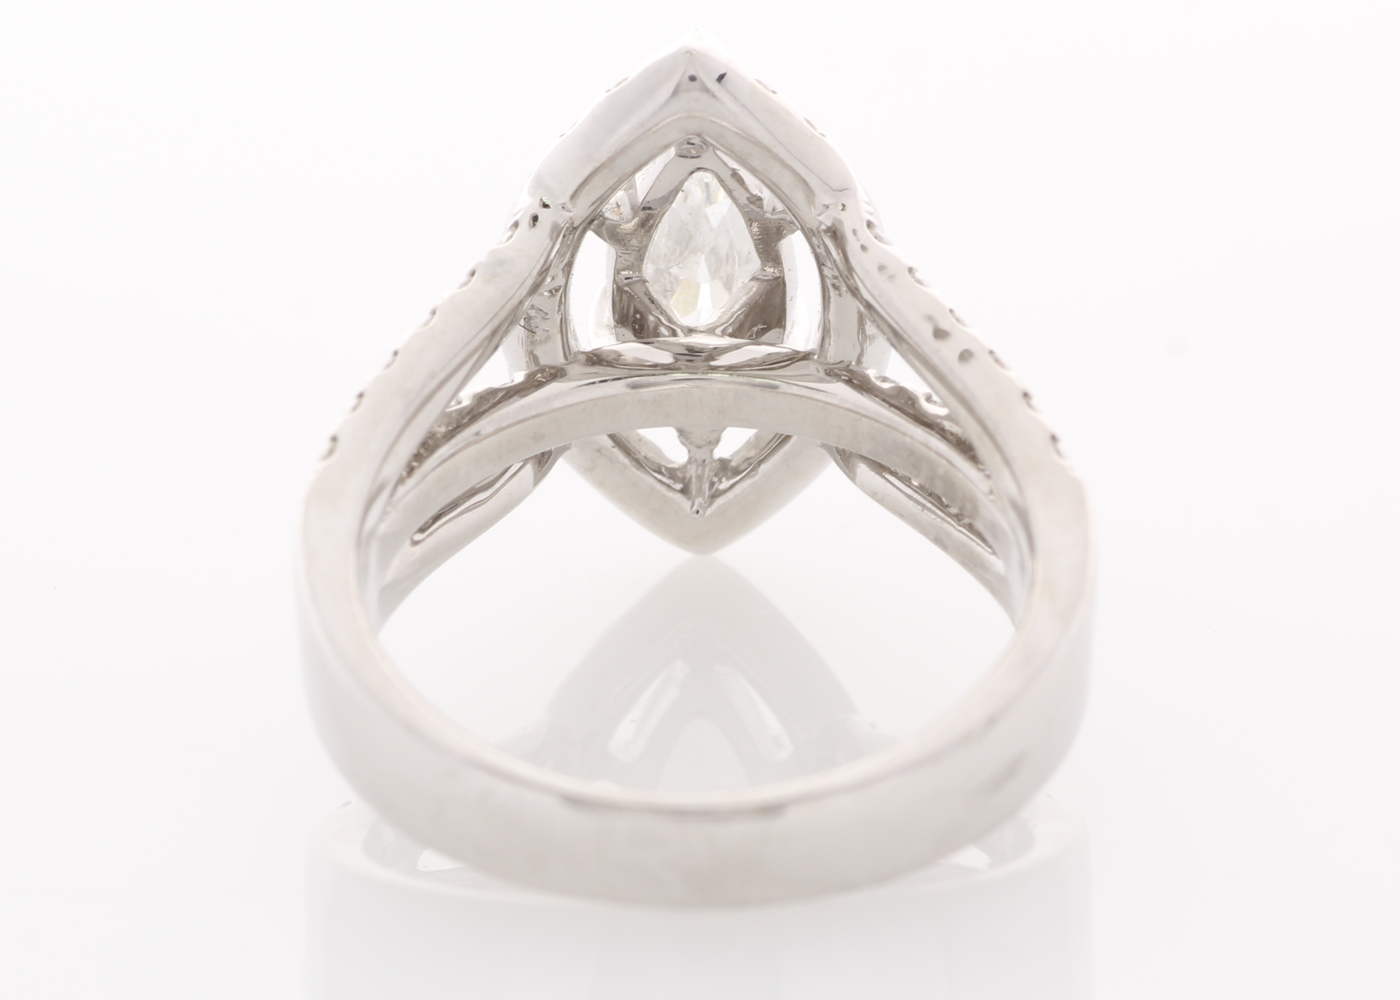 Lot 47 - 18ct White Gold Single Stone With Halo Setting Ring 1.94